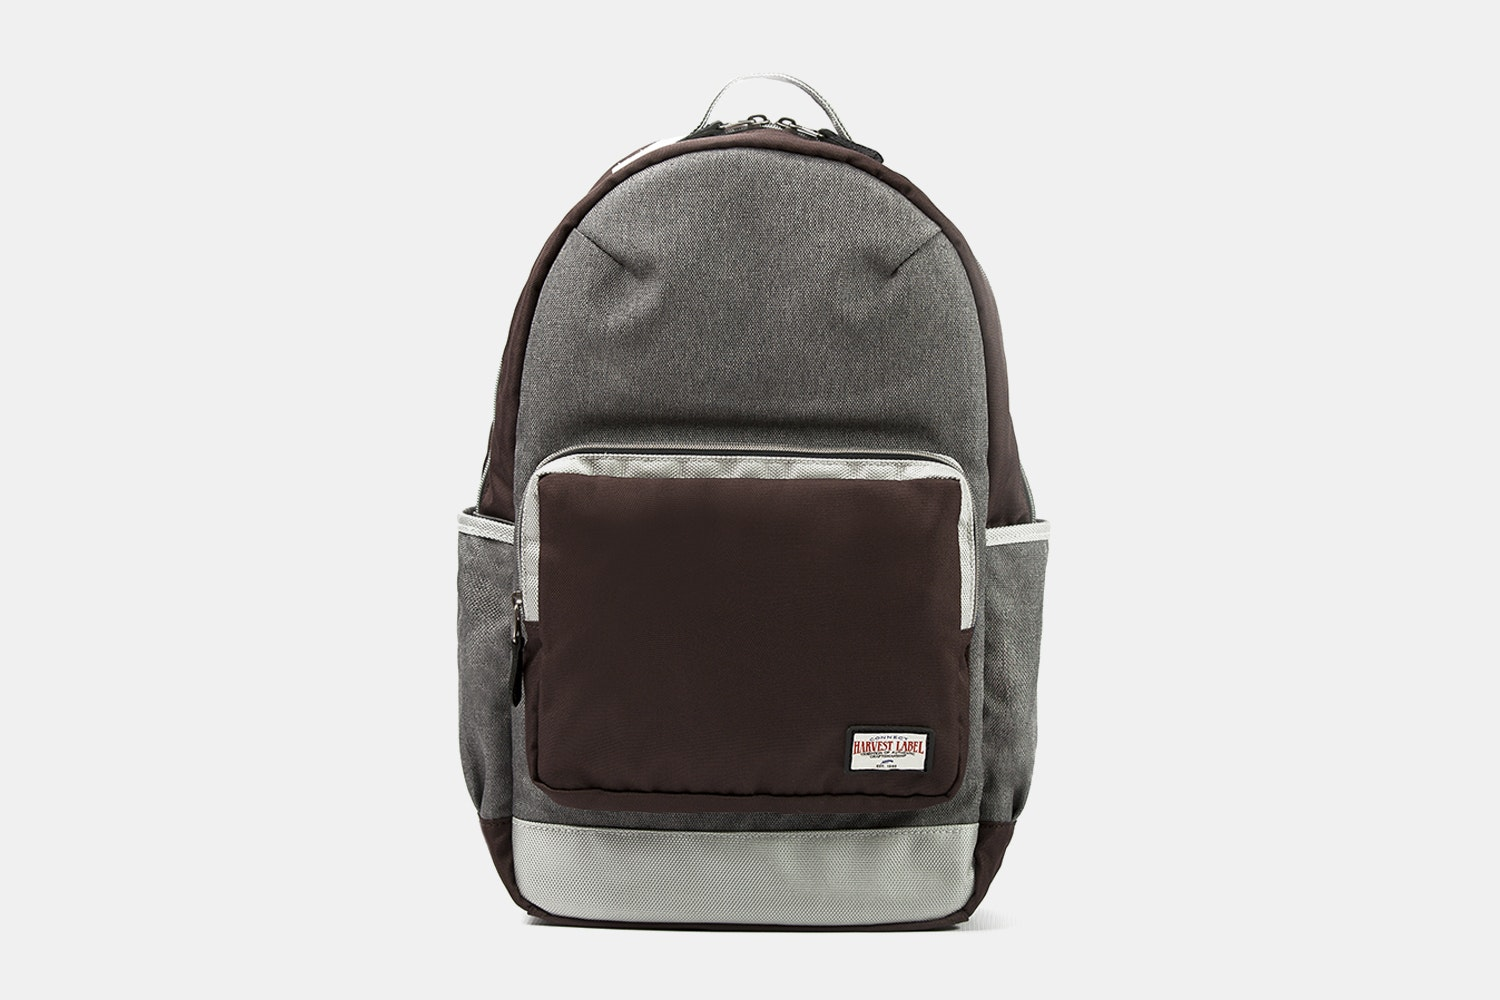 Harvest Label Vivo Backpack